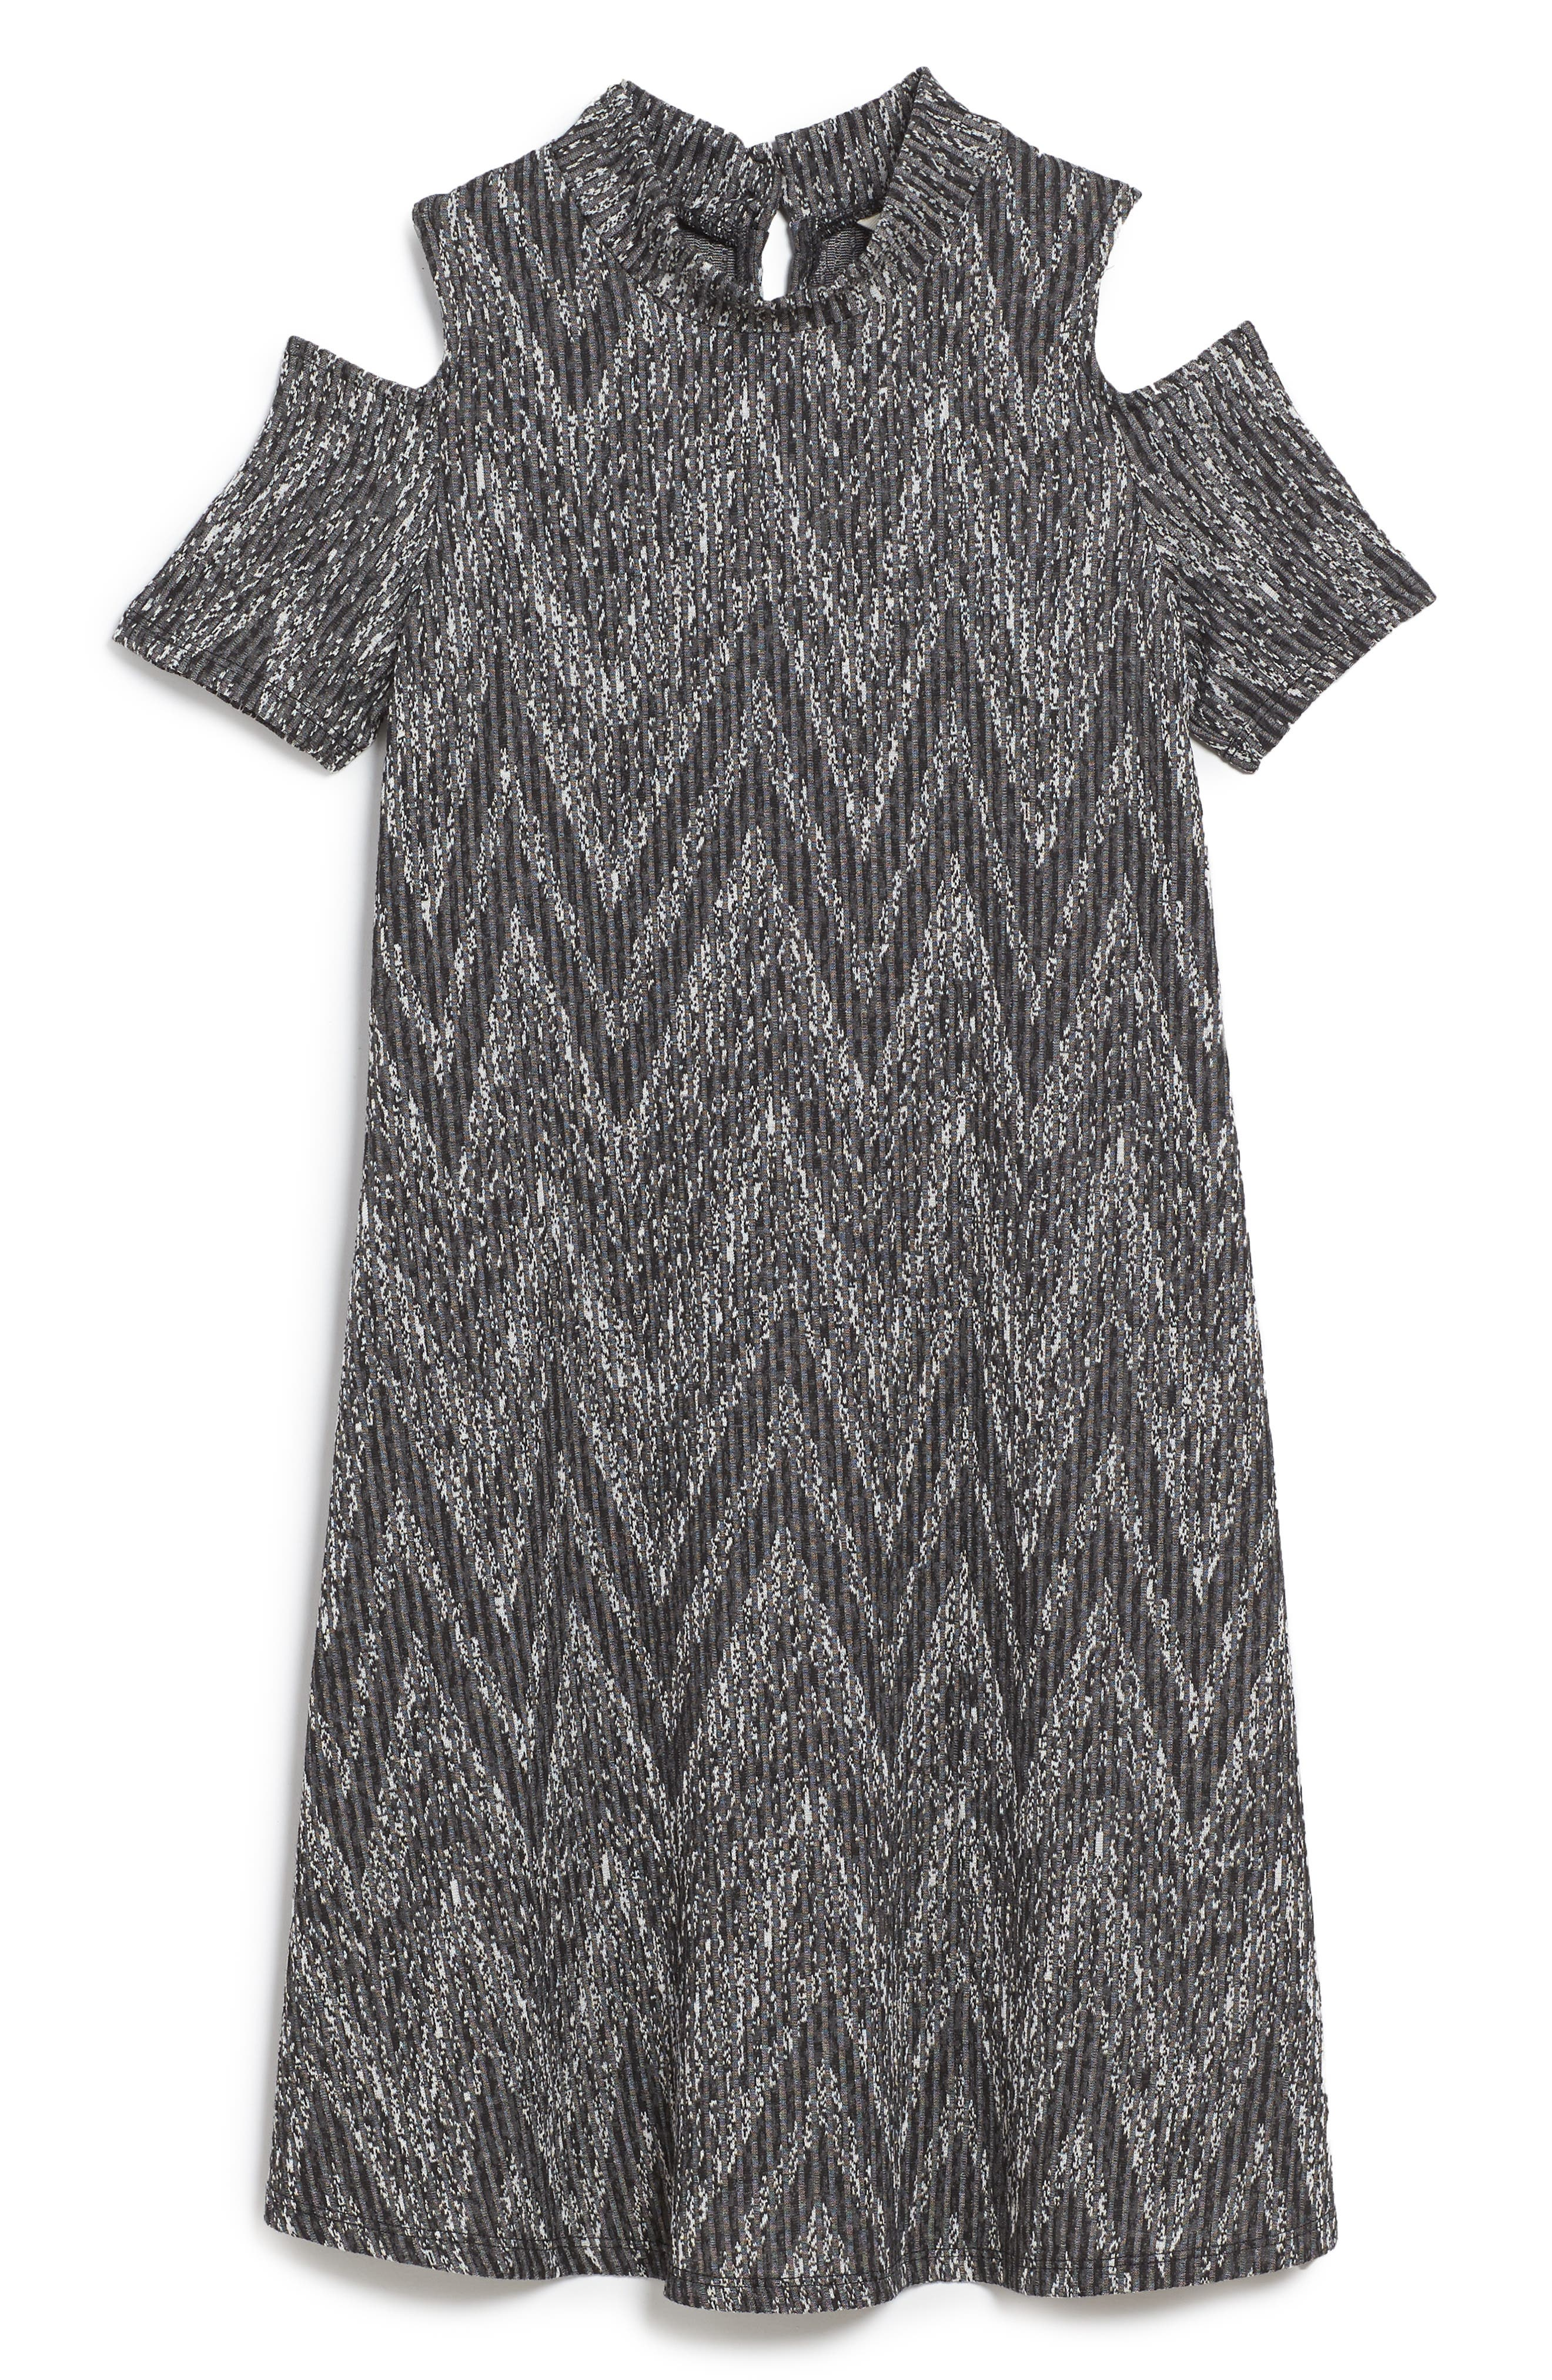 Rib Knit Cold Shoulder Dress,                         Main,                         color, Grey